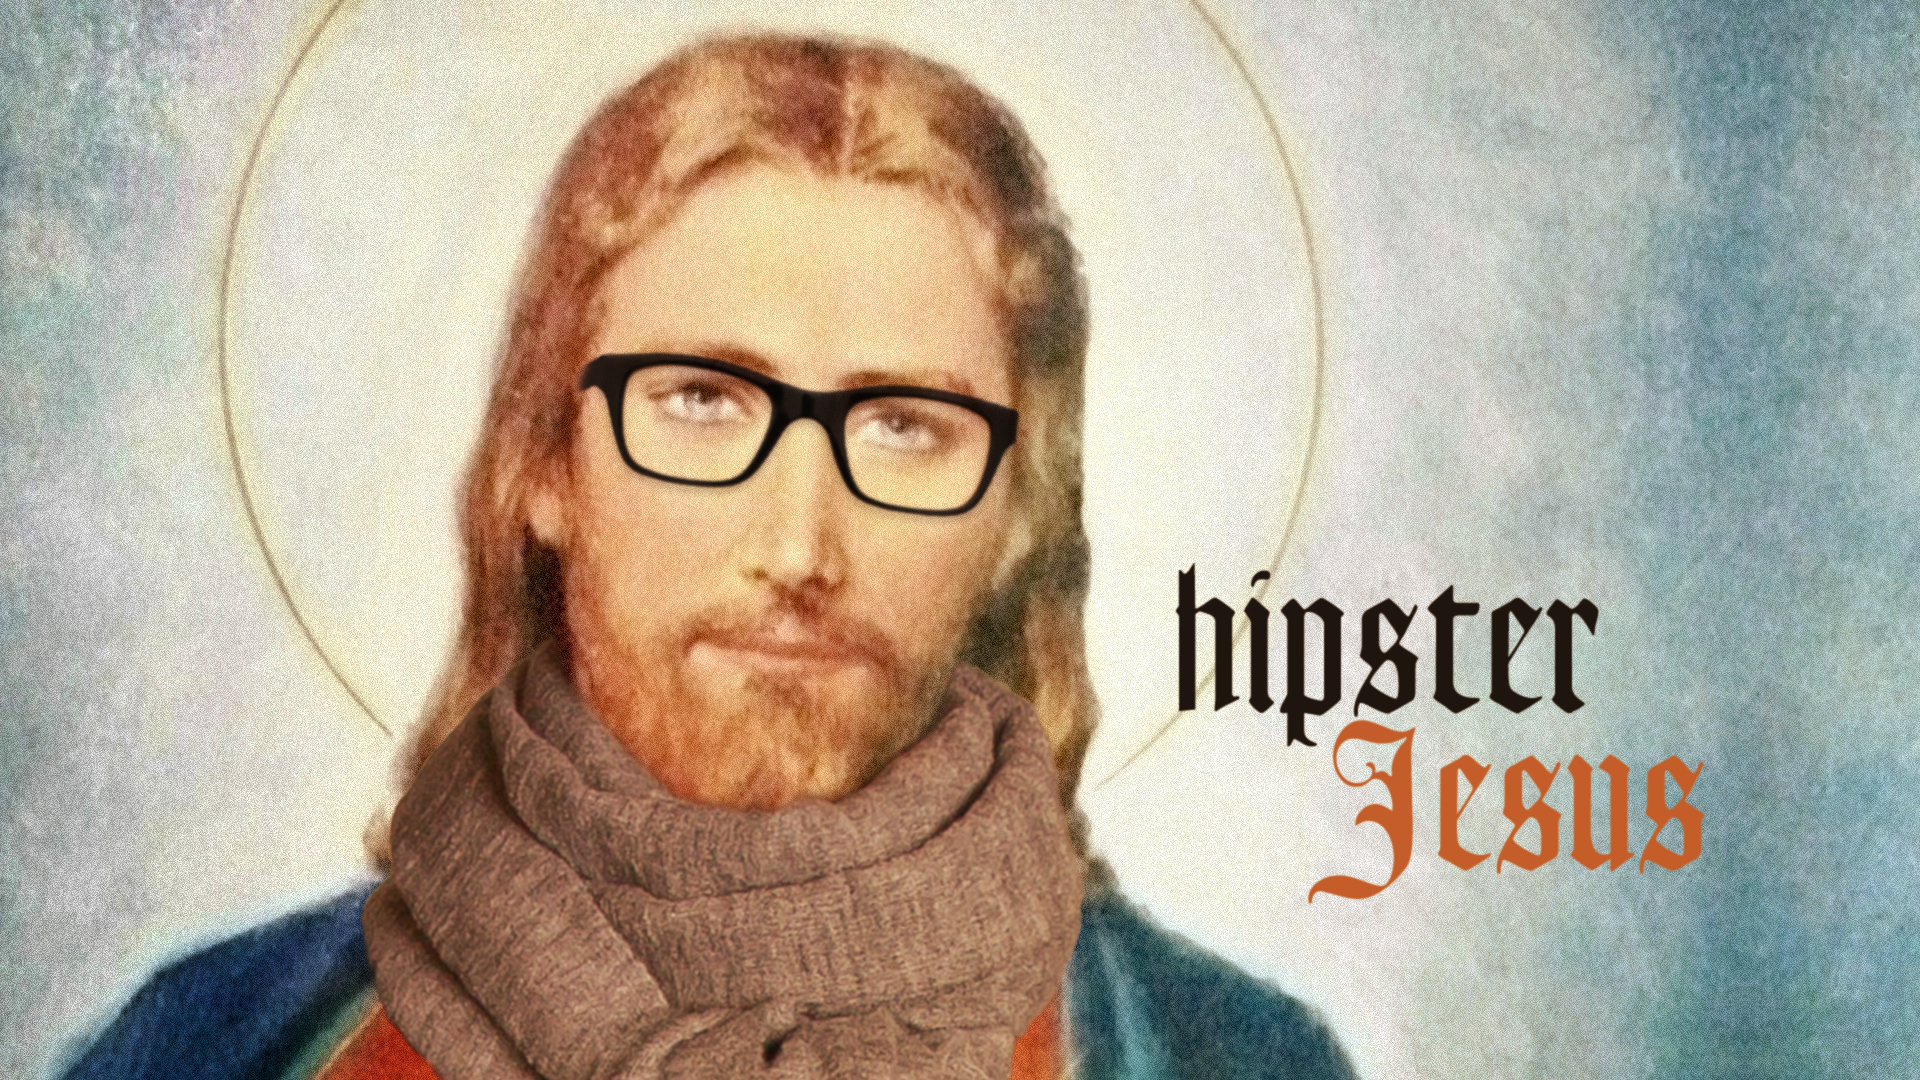 12 Signs That Your Church Is Overly Hipster Peter Haas